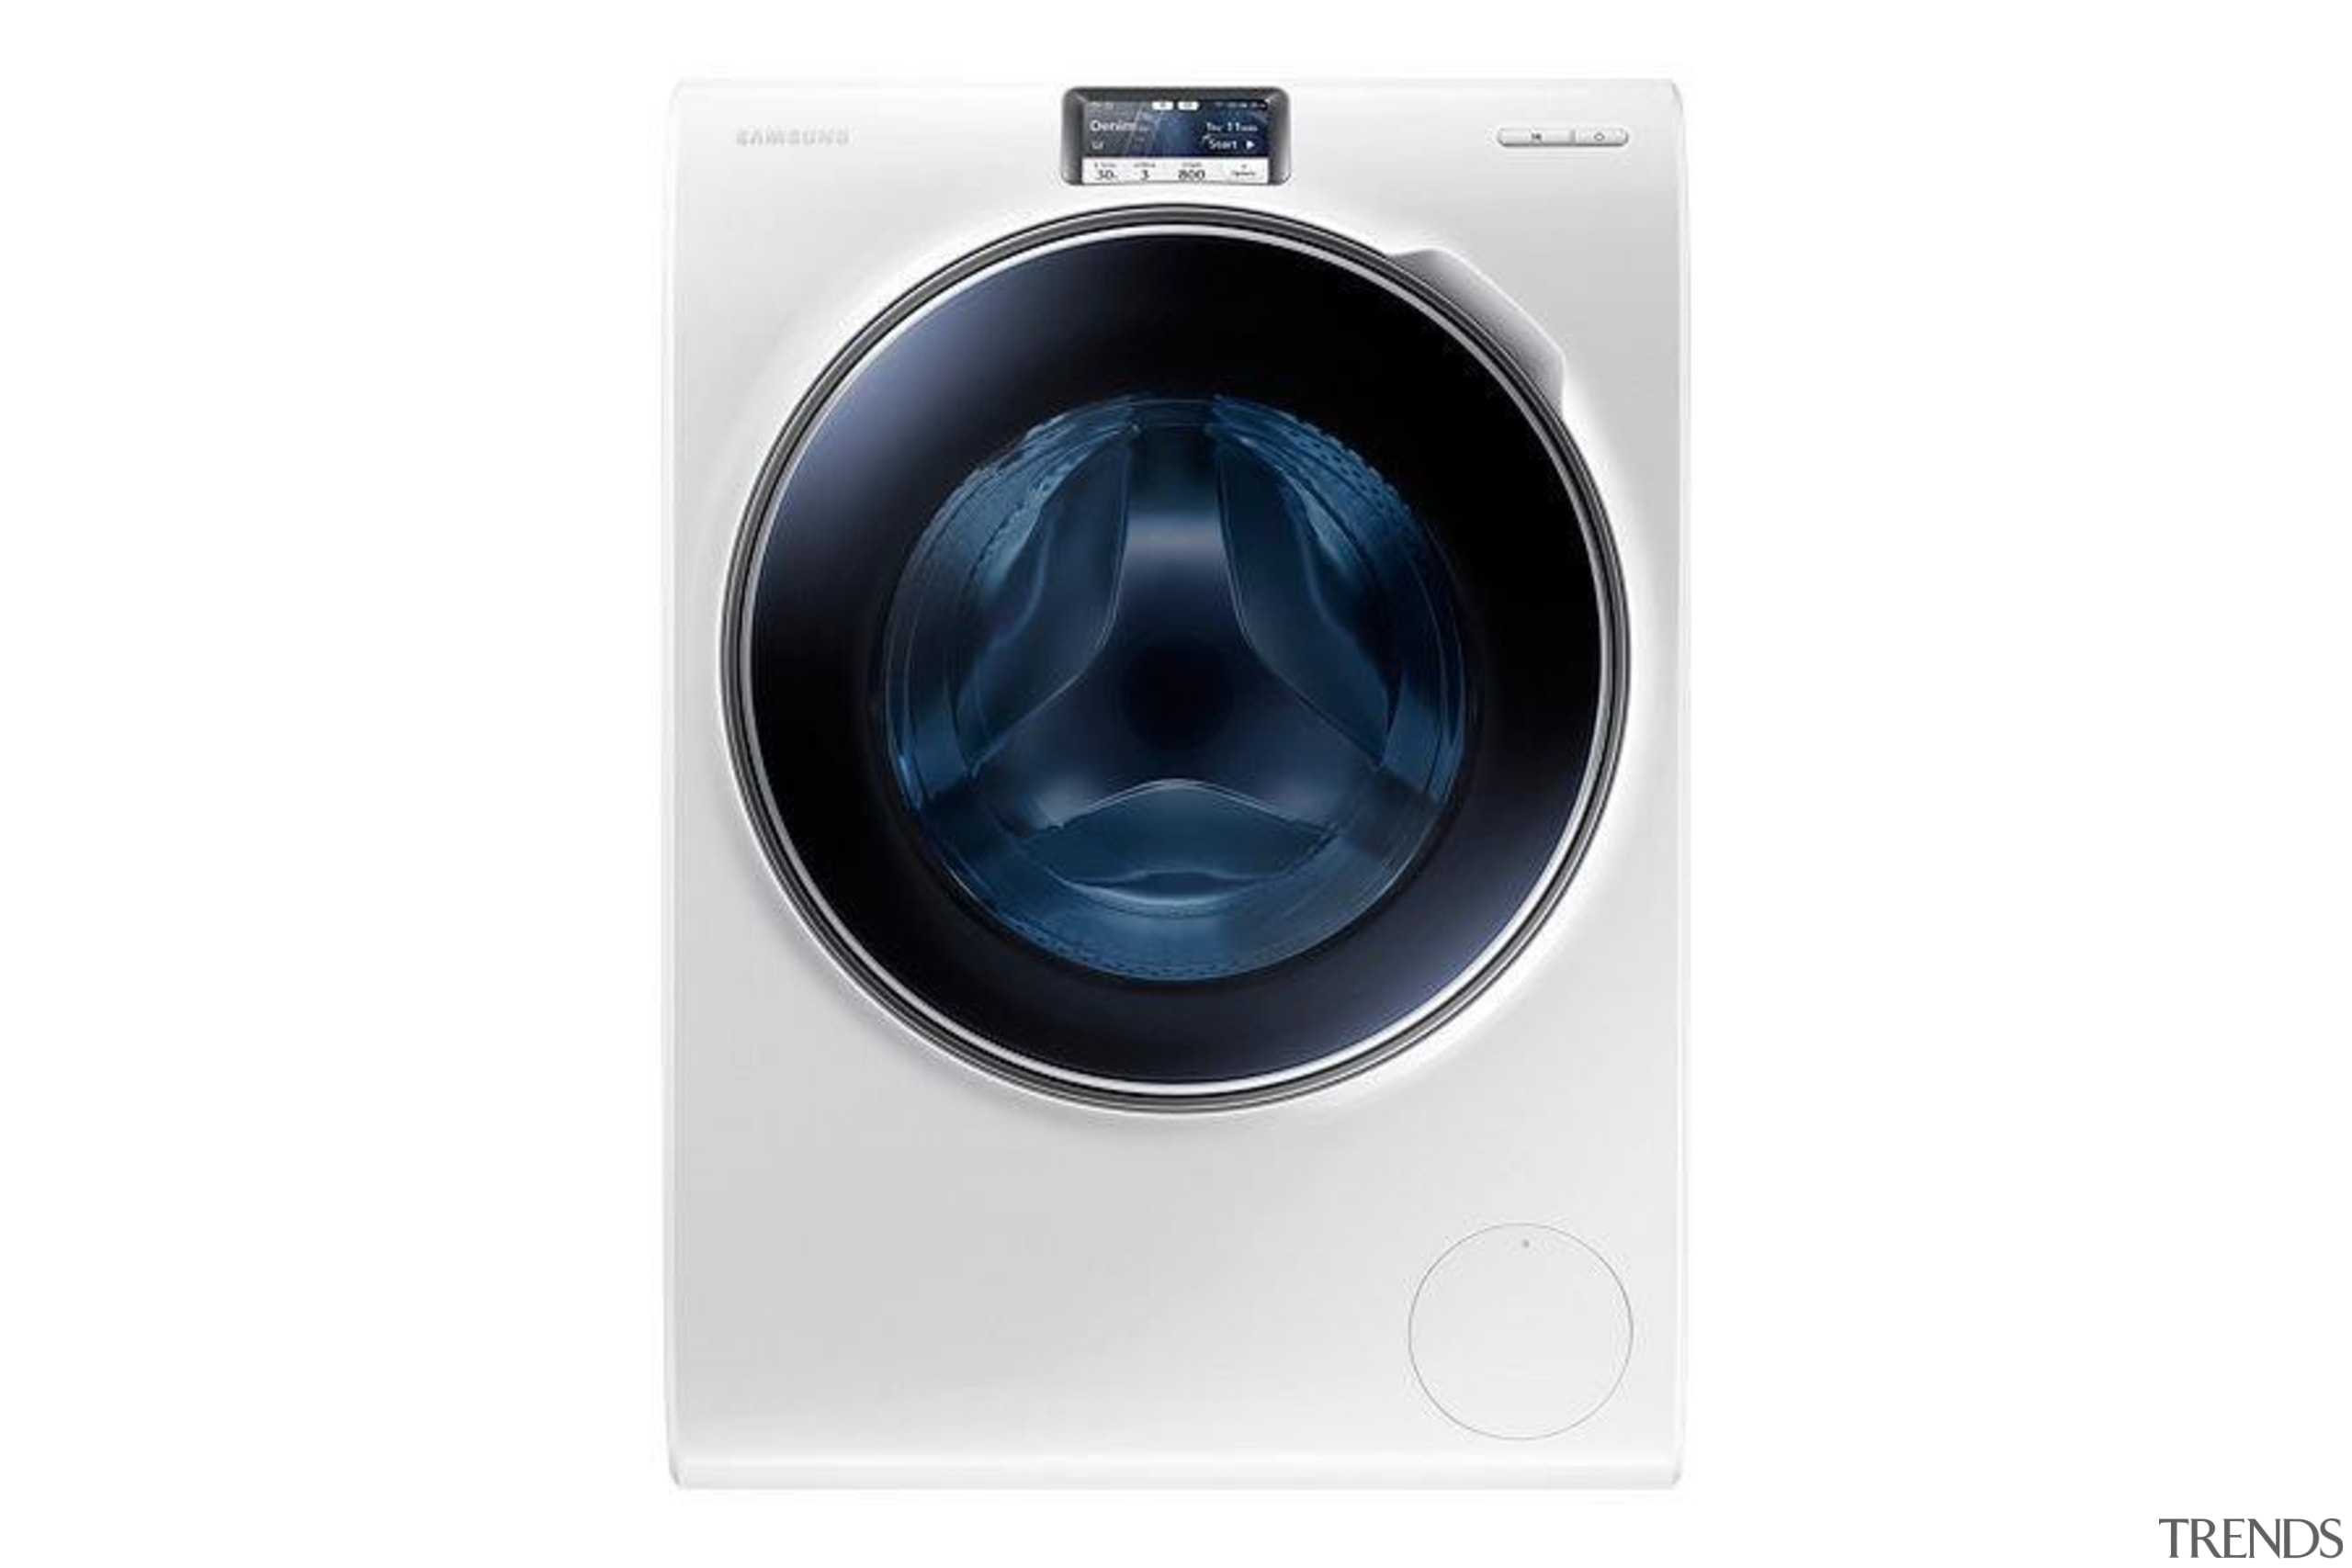 Laundry-Front loader WW90H9600EW/SAWW9000 is a washing machine with clothes dryer, home appliance, major appliance, product, product design, washing machine, white